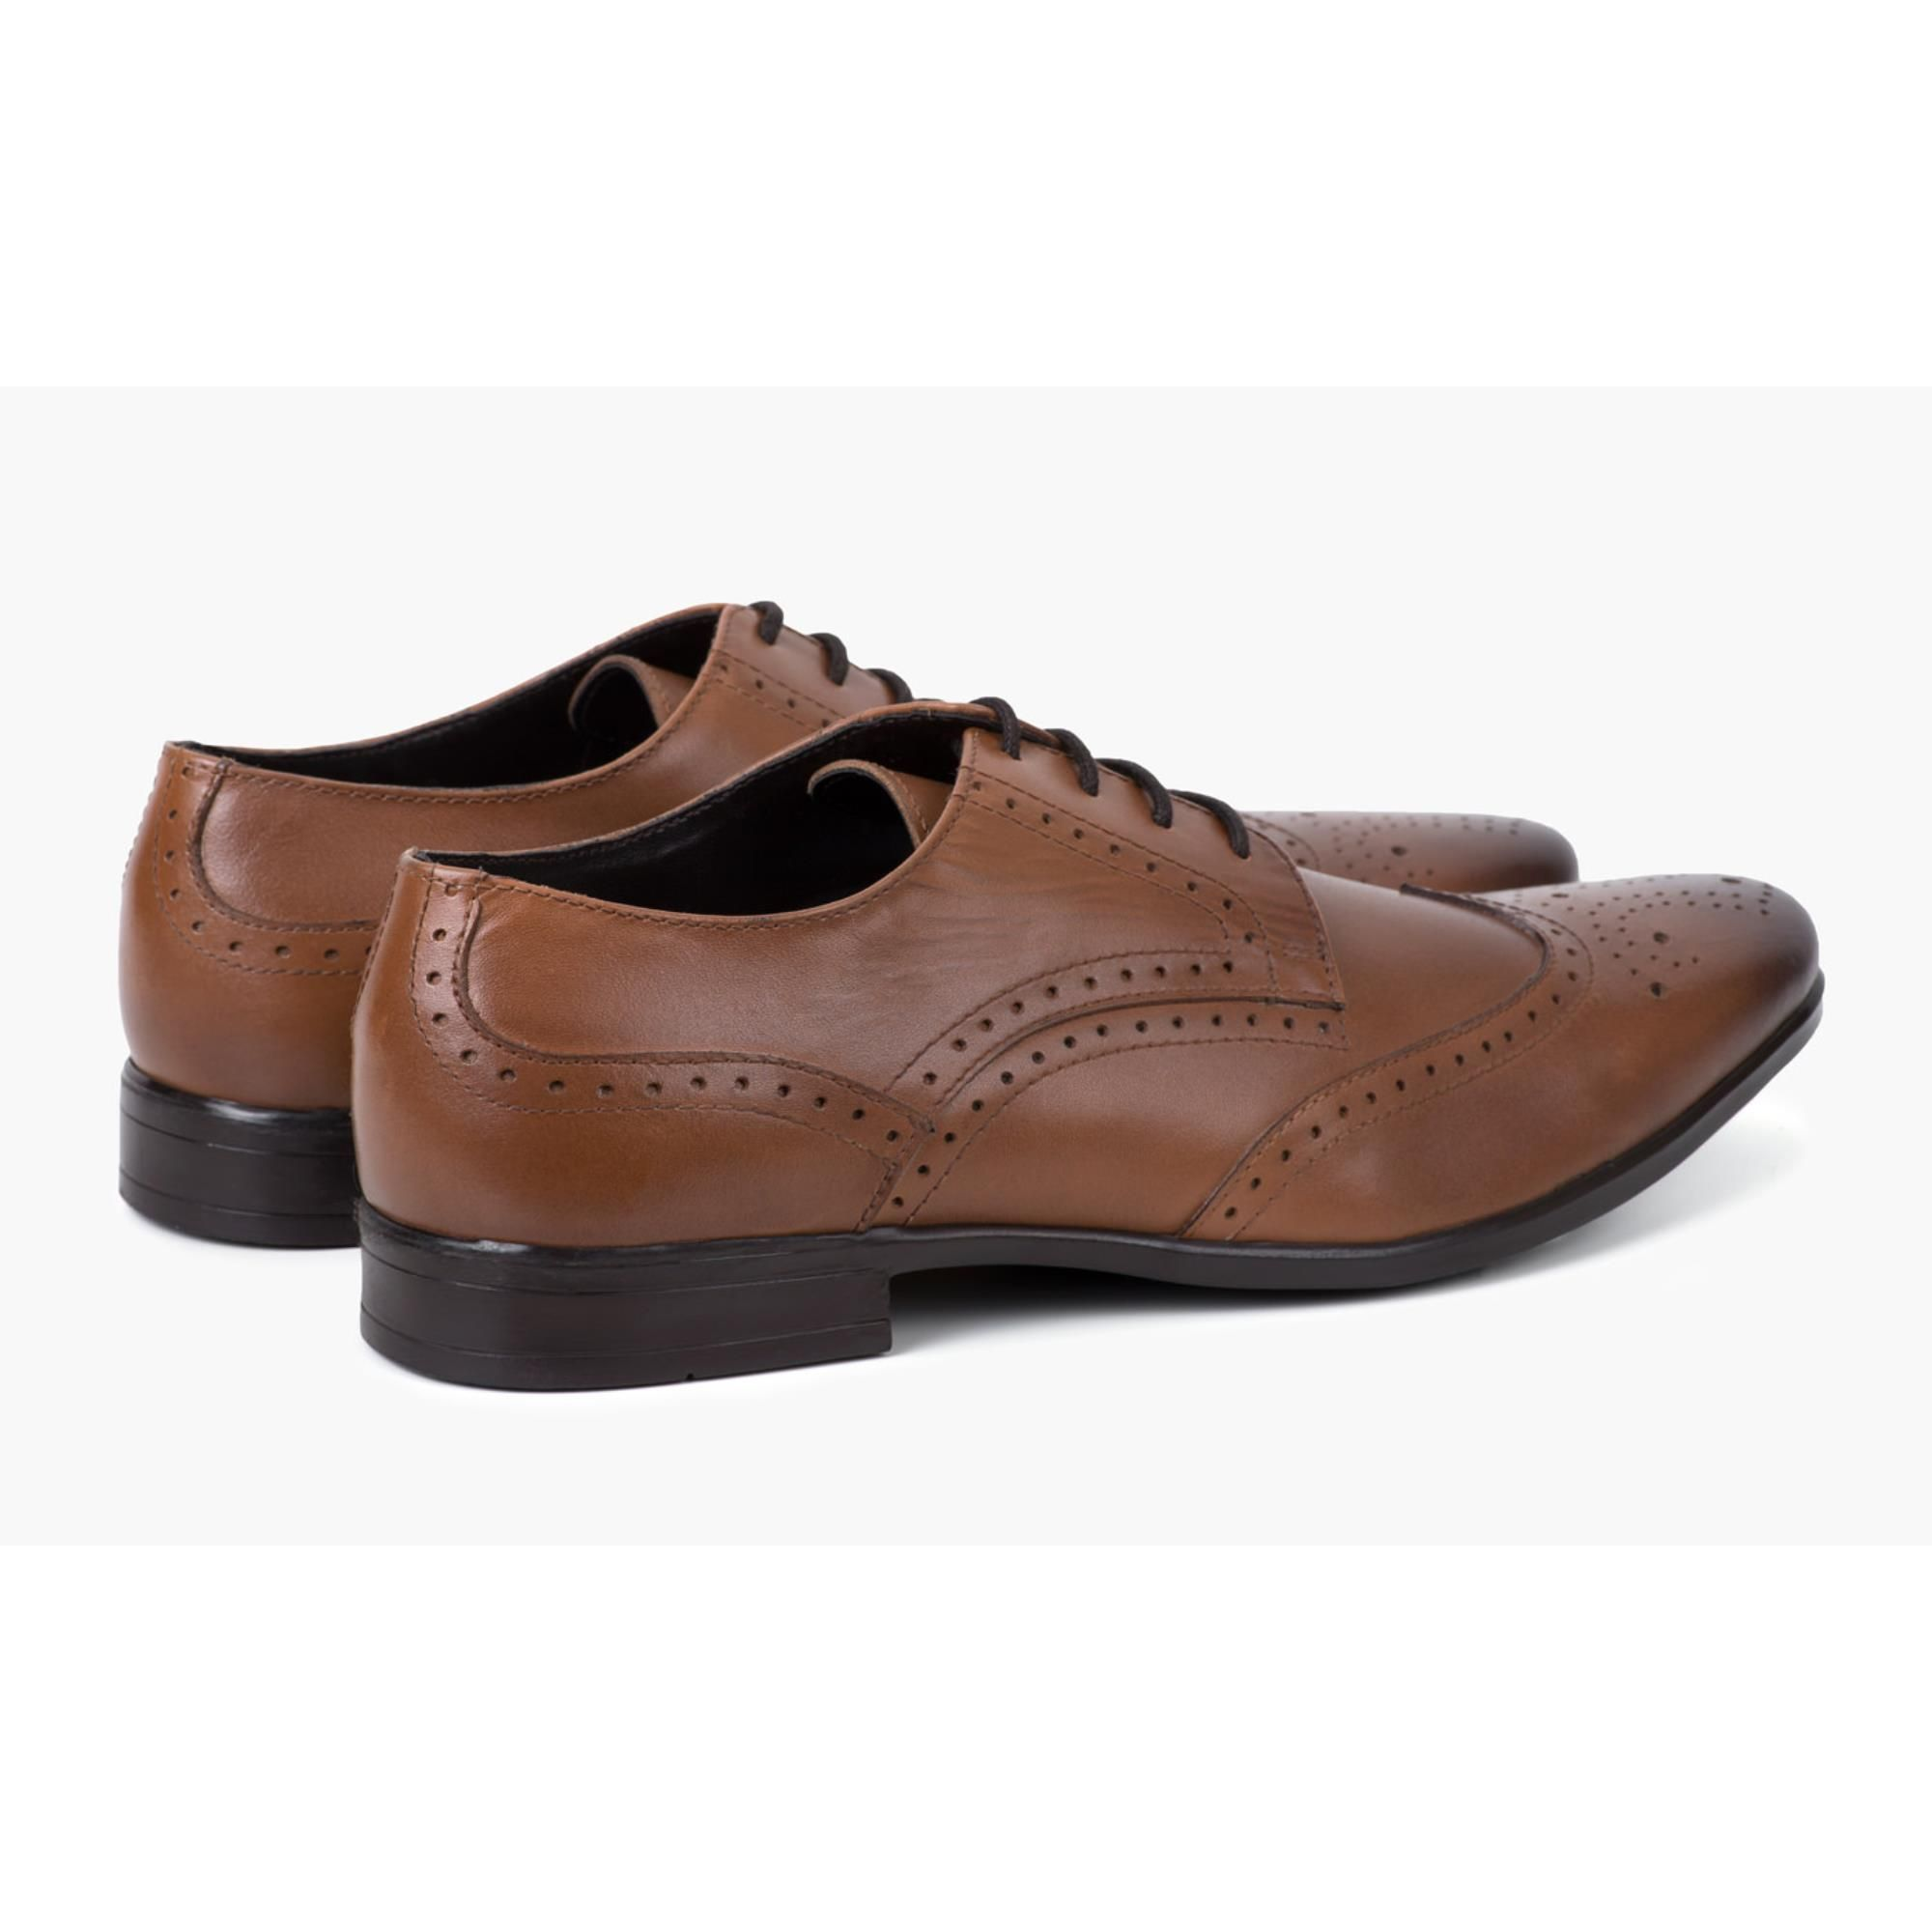 Redfoot Jenson Tan Leather Brogue Shoe